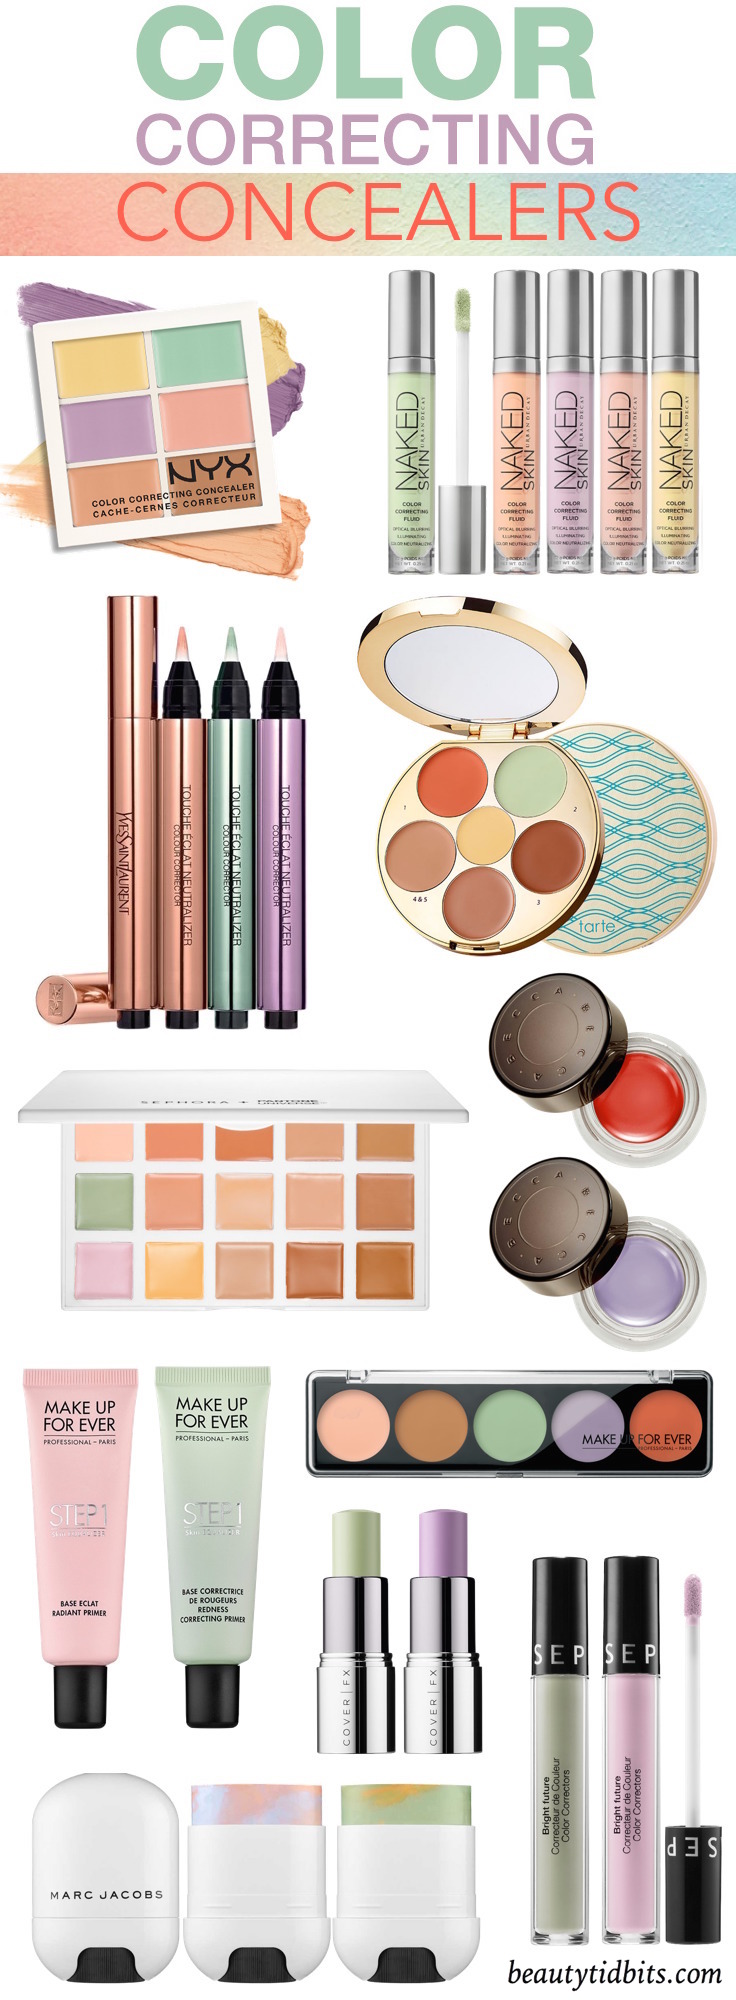 Looking for the best color correcting makeup for your dark circles, dark spots or redness? These easy-to-use color correcting concealers can cover up anything from acne or rosacea to the darkest under-eye circles! Click through to get your Color Correcting Cheat Sheet!!